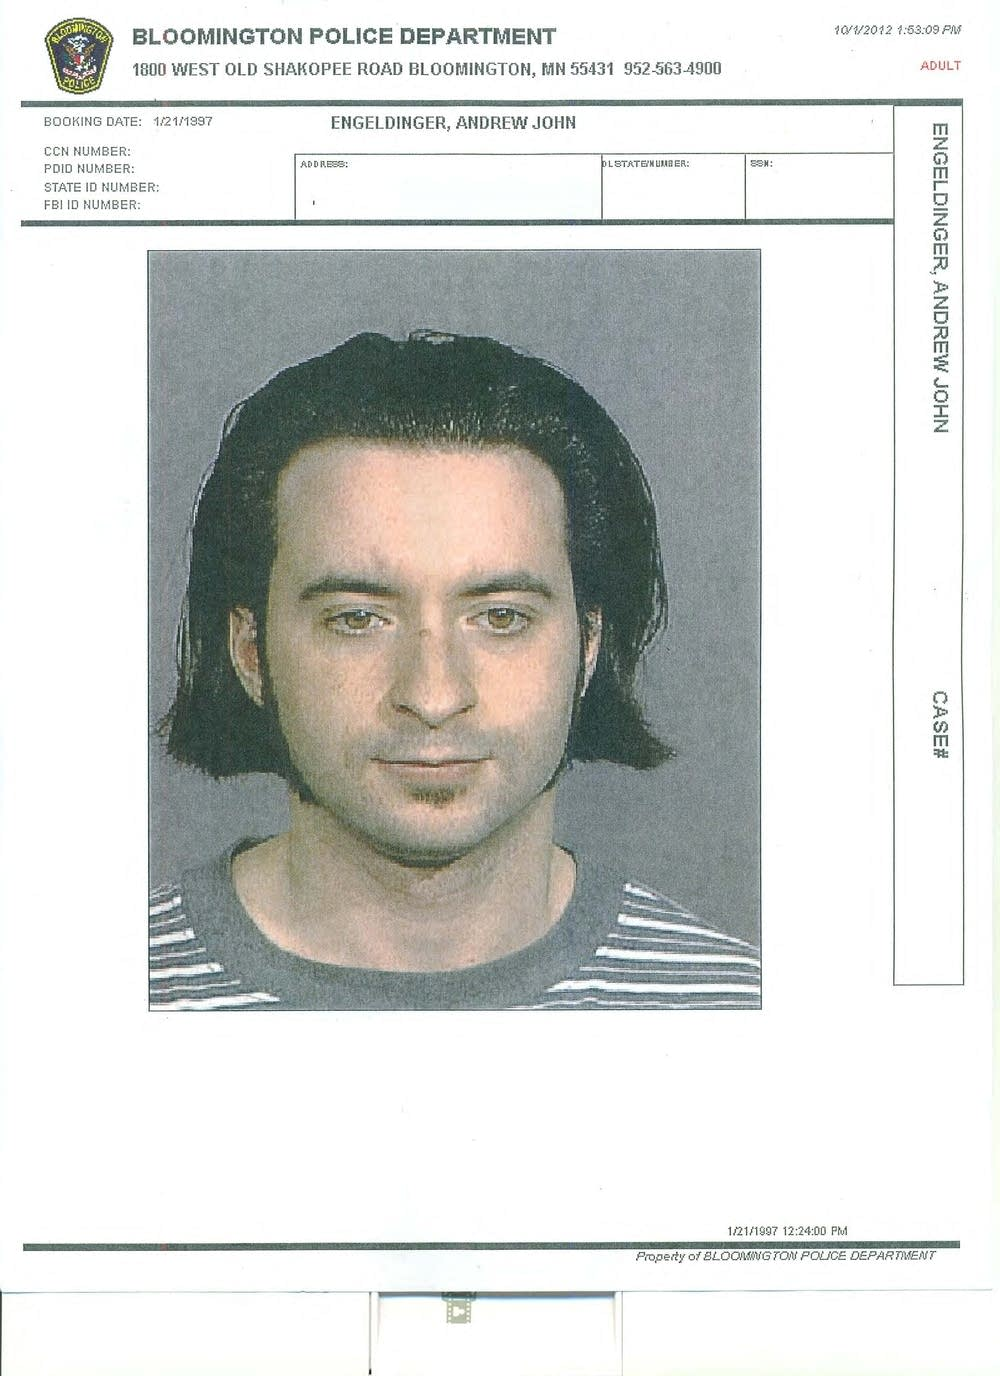 Andrew Engeldinger, 1997 arrest photo